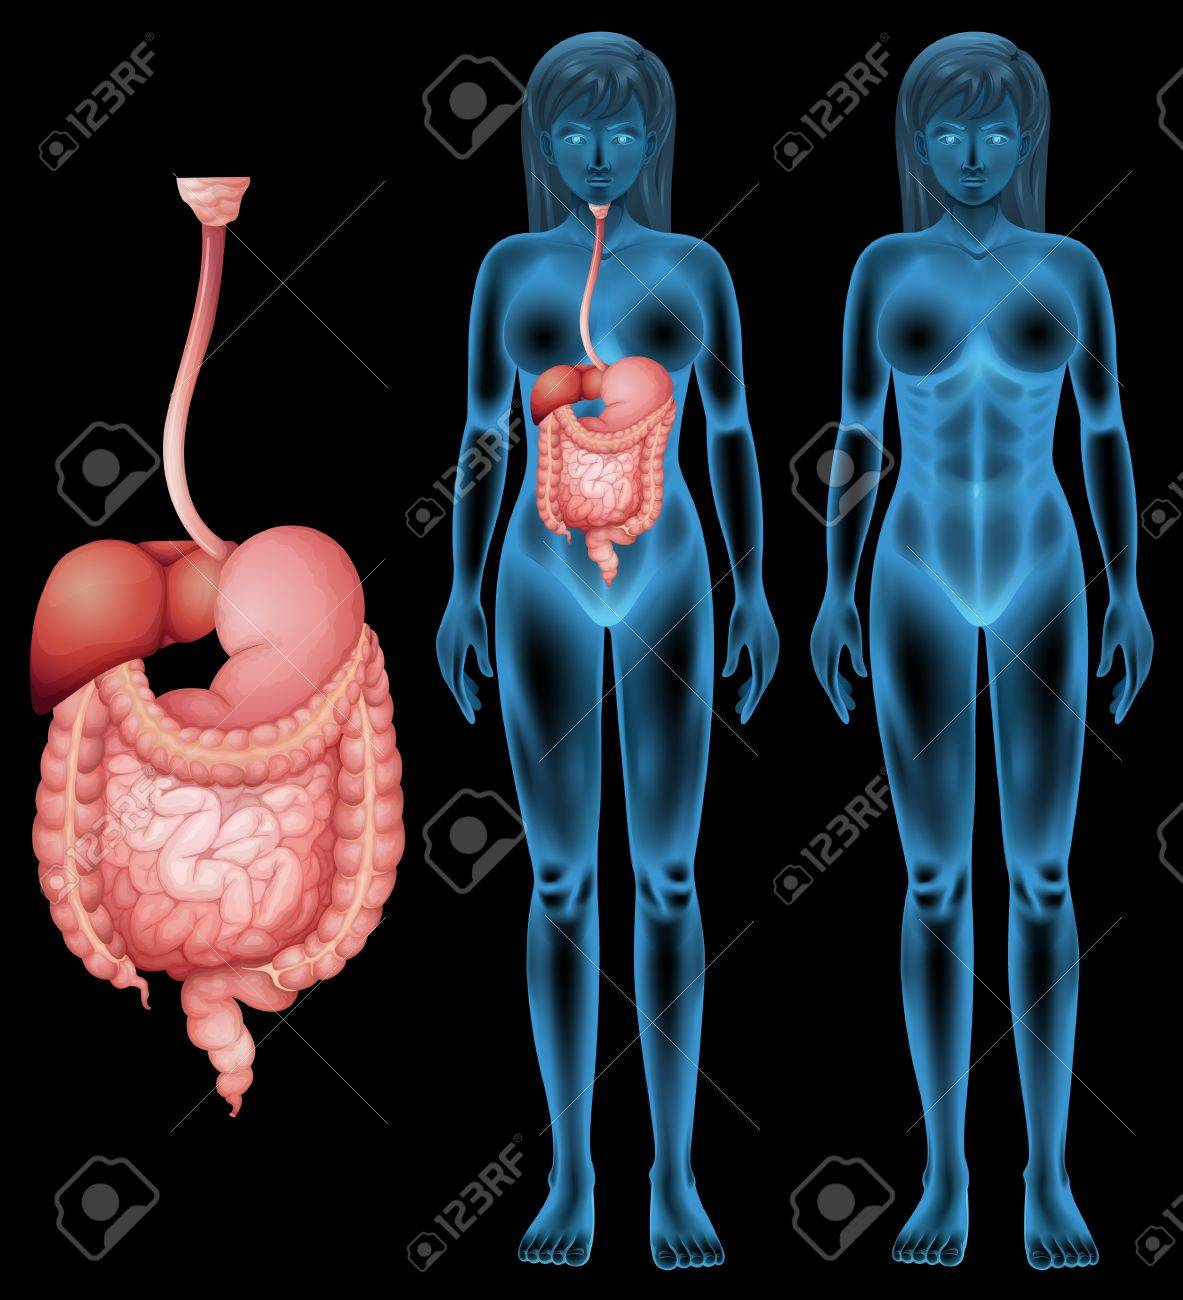 Illustration of the human digestive system Stock Vector - 20185485